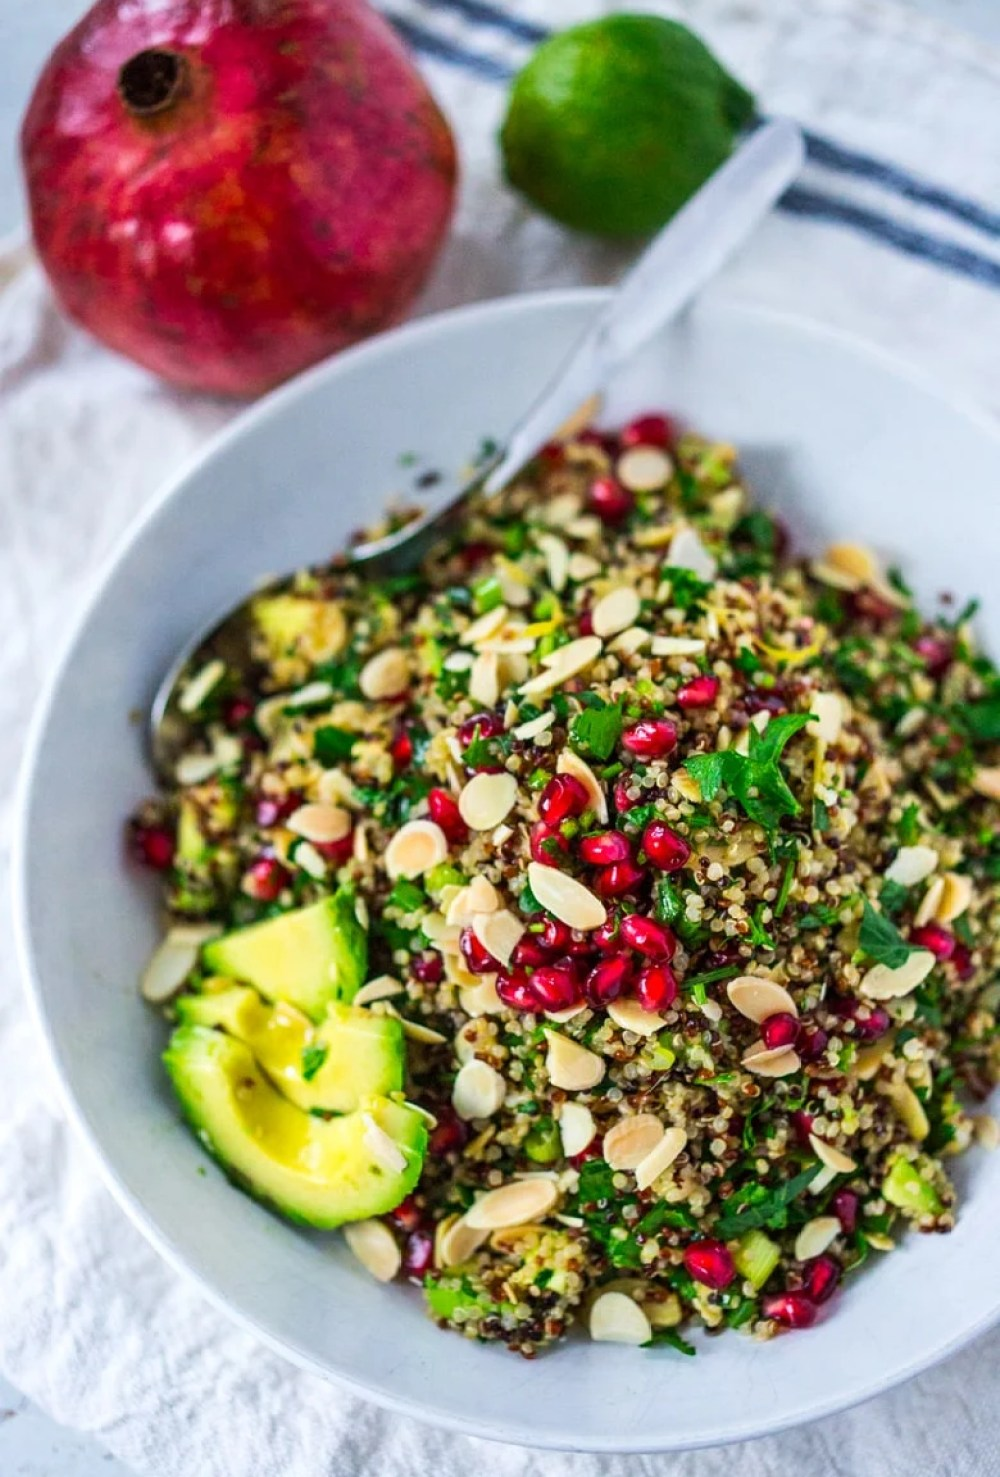 Holiday Crunch Salad with Quinoa, almonds, pomegranate, parsley and mint. | www.feastingathome.com